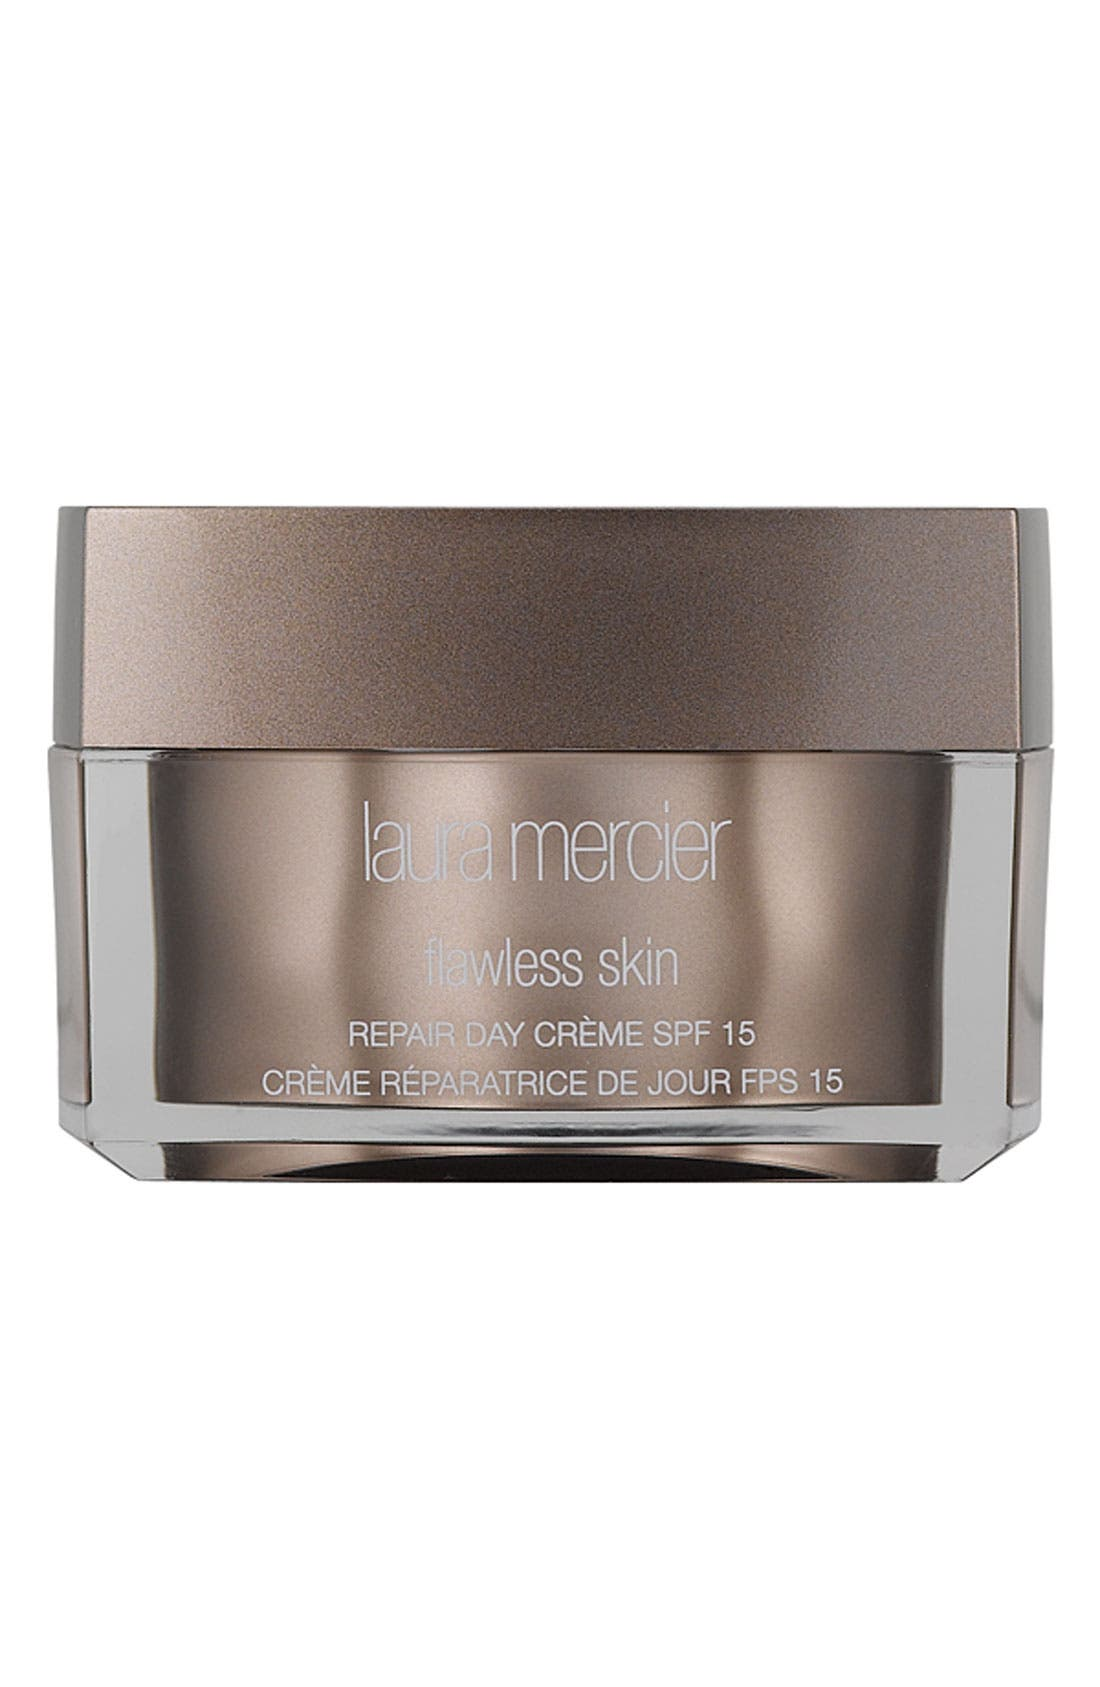 Image of Laura Mercier Repair Day Creme - SPF 15